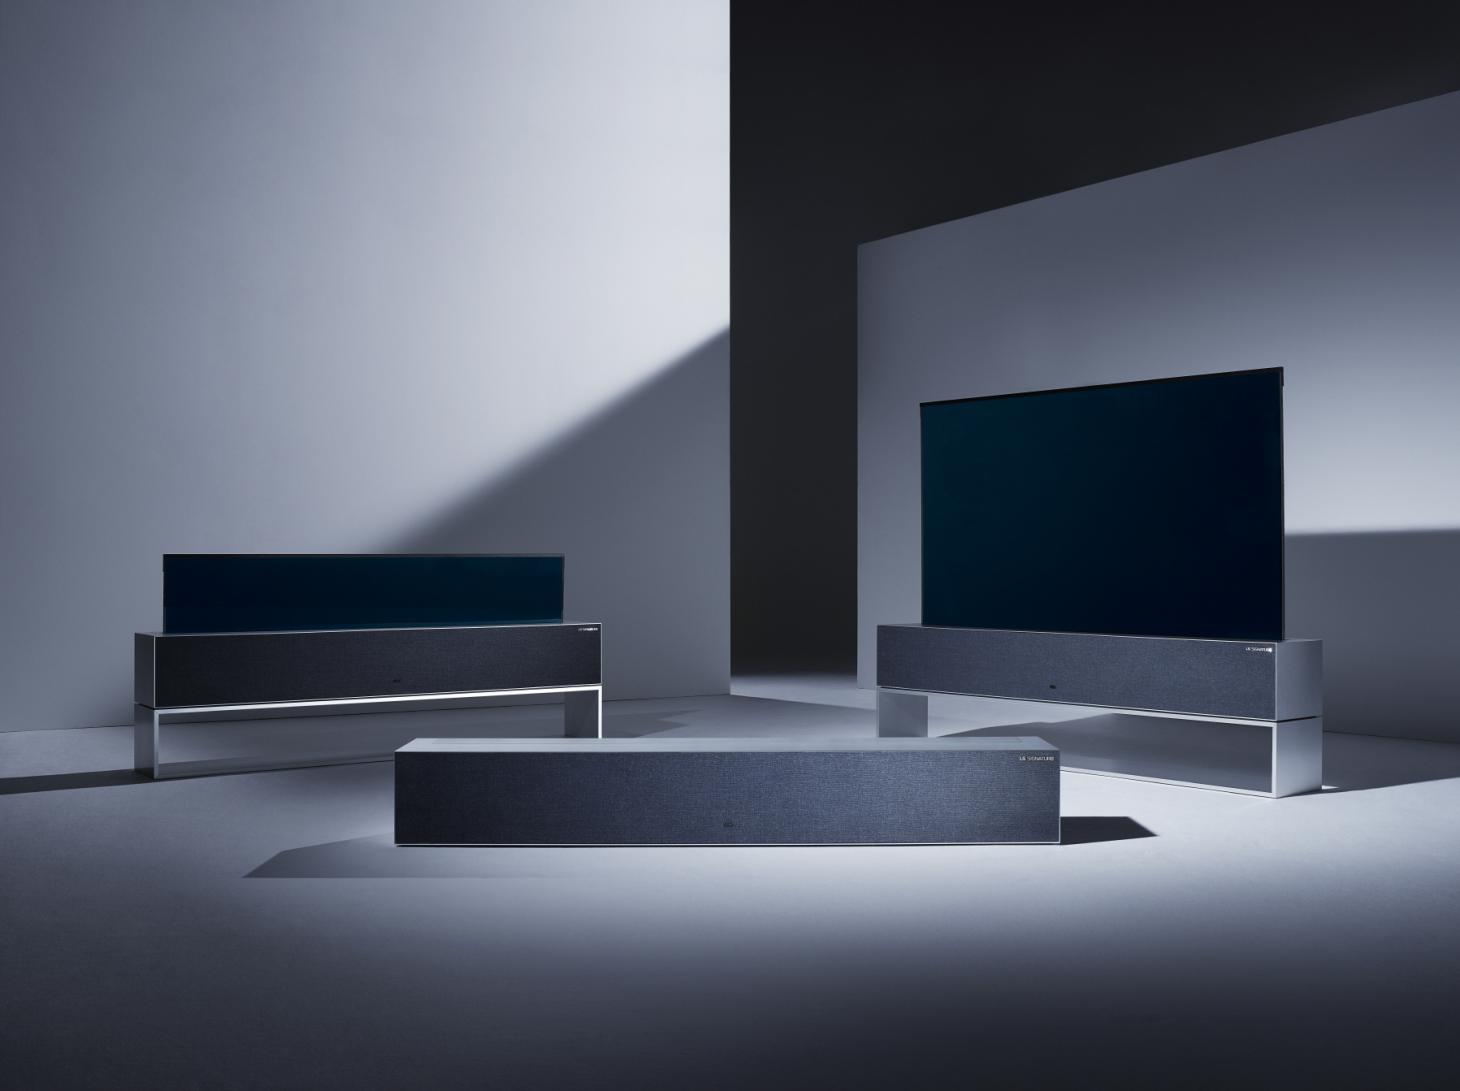 LG OLED R TV with Rollable Design